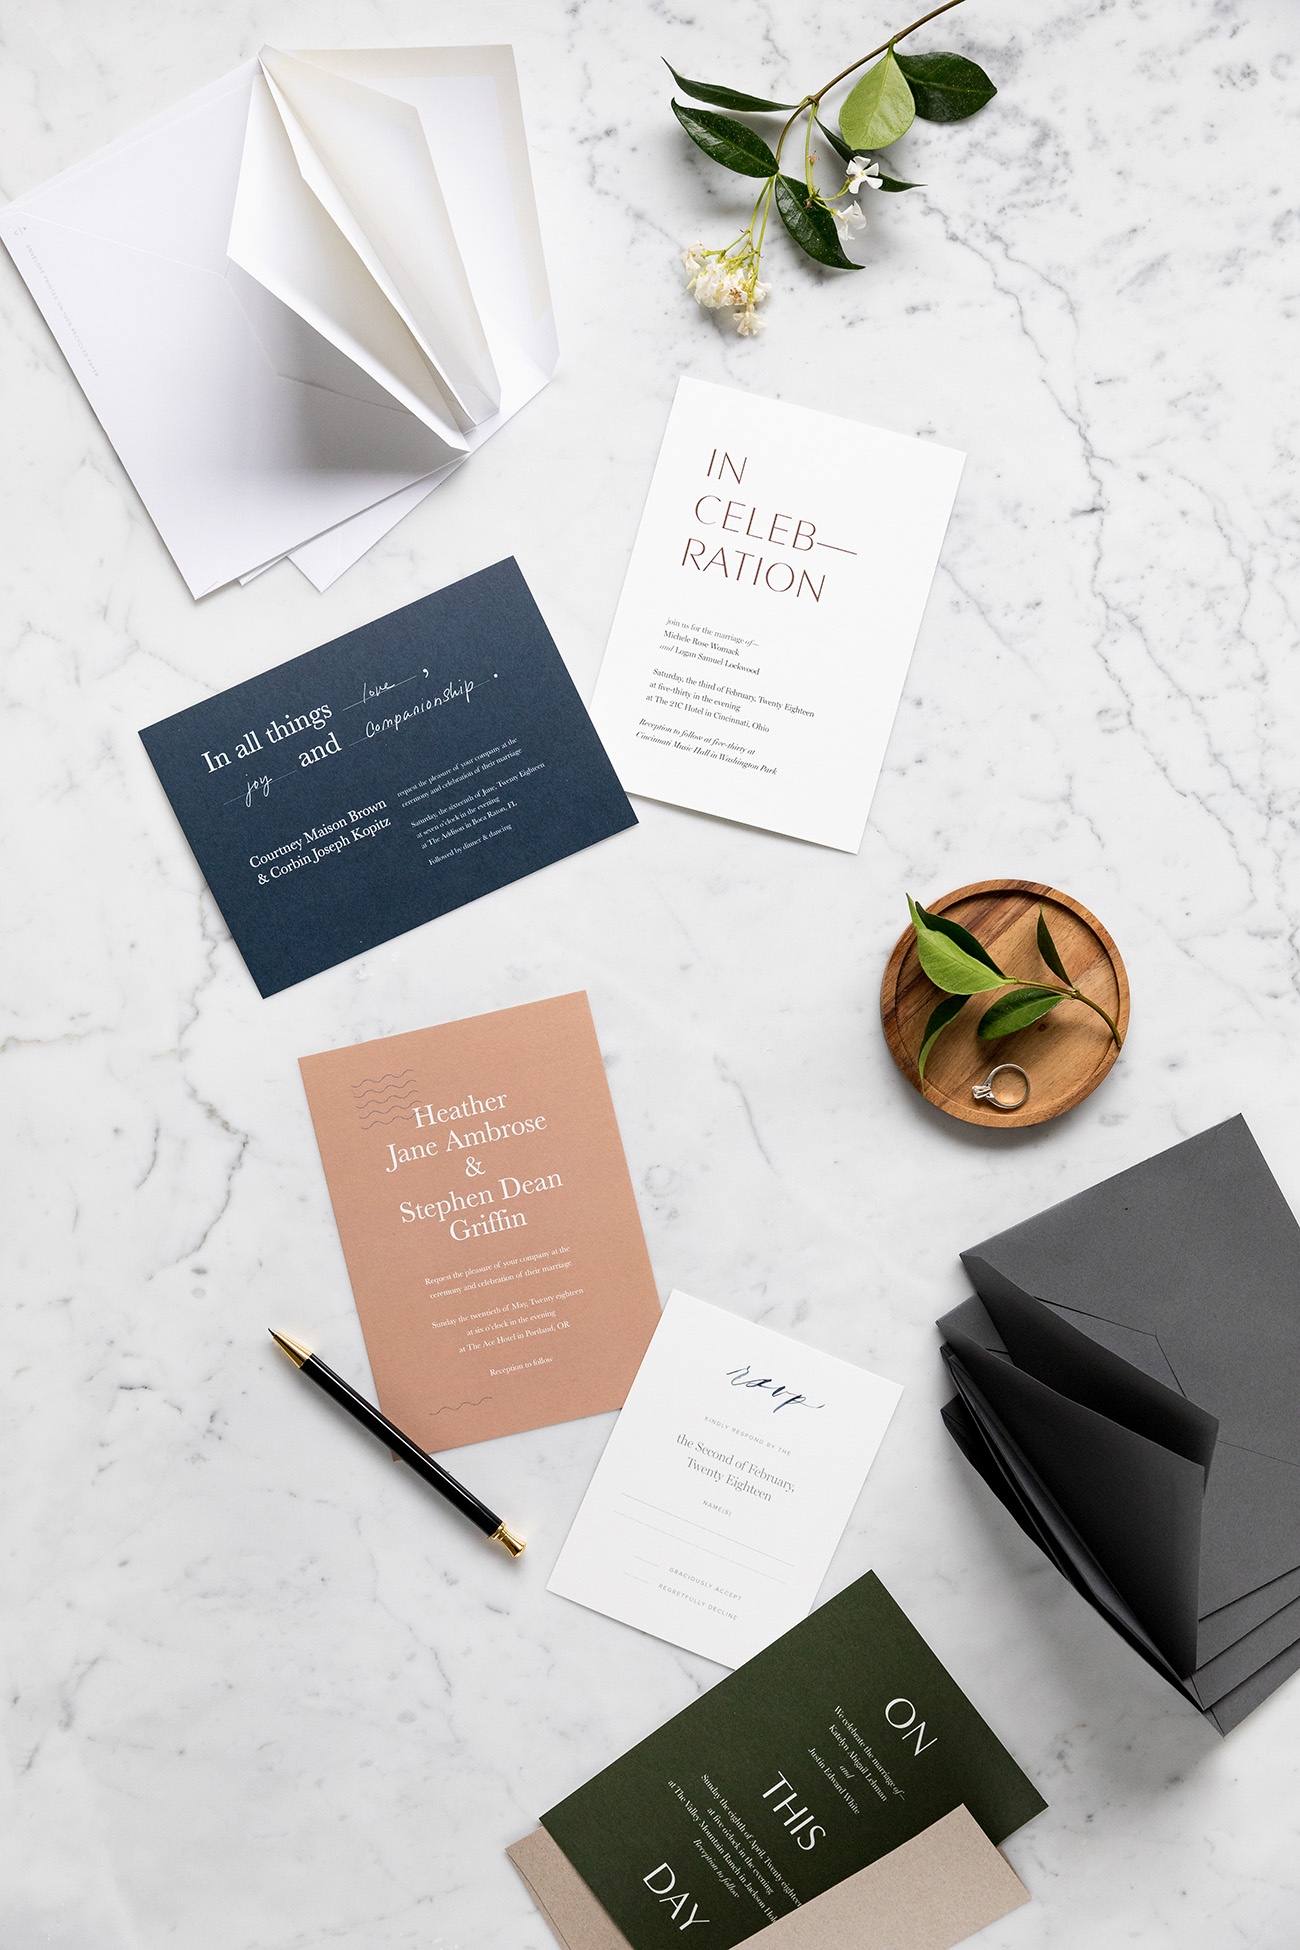 Posh Wedding Invitations From Artifact Uprising Luxe Wedding Invitations From Artifact Uprising Green Wedding Invitations Melbourne Wedding Invitations Addressing Etiquette wedding Modern Wedding Invitations